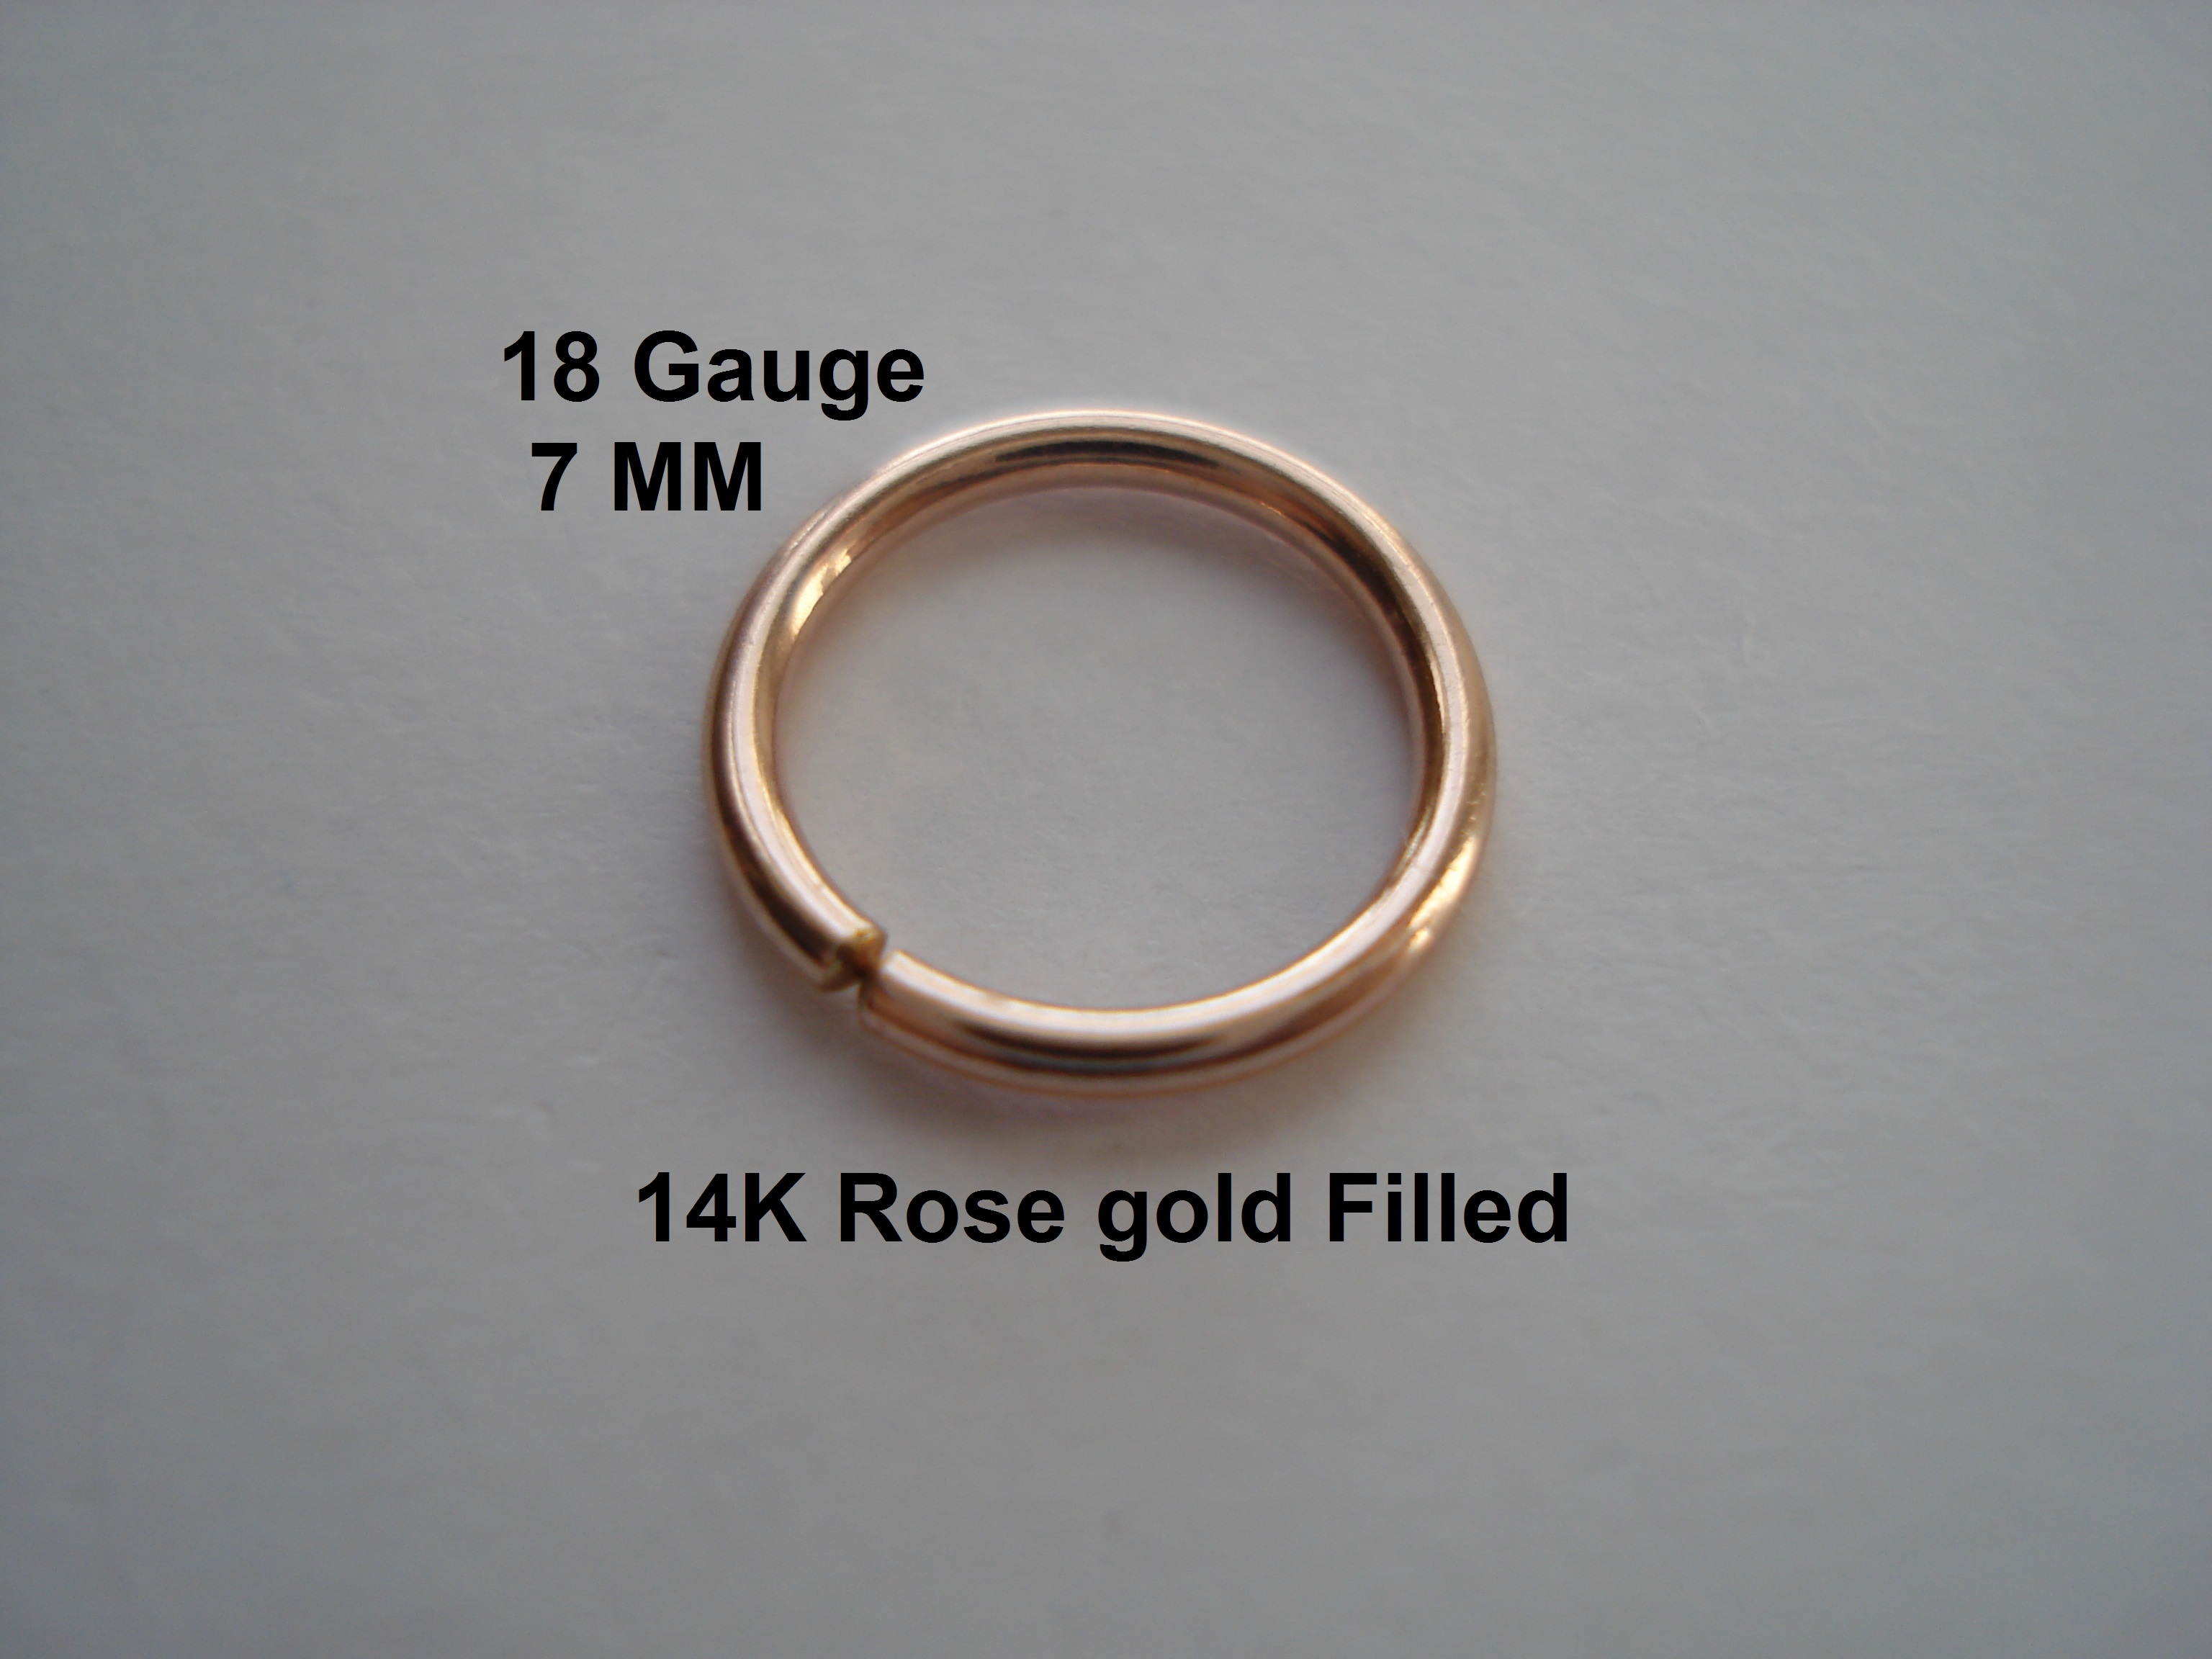 18g Gauge 14k Rose Gold Filled Septum Nose Ring Hoop Helix